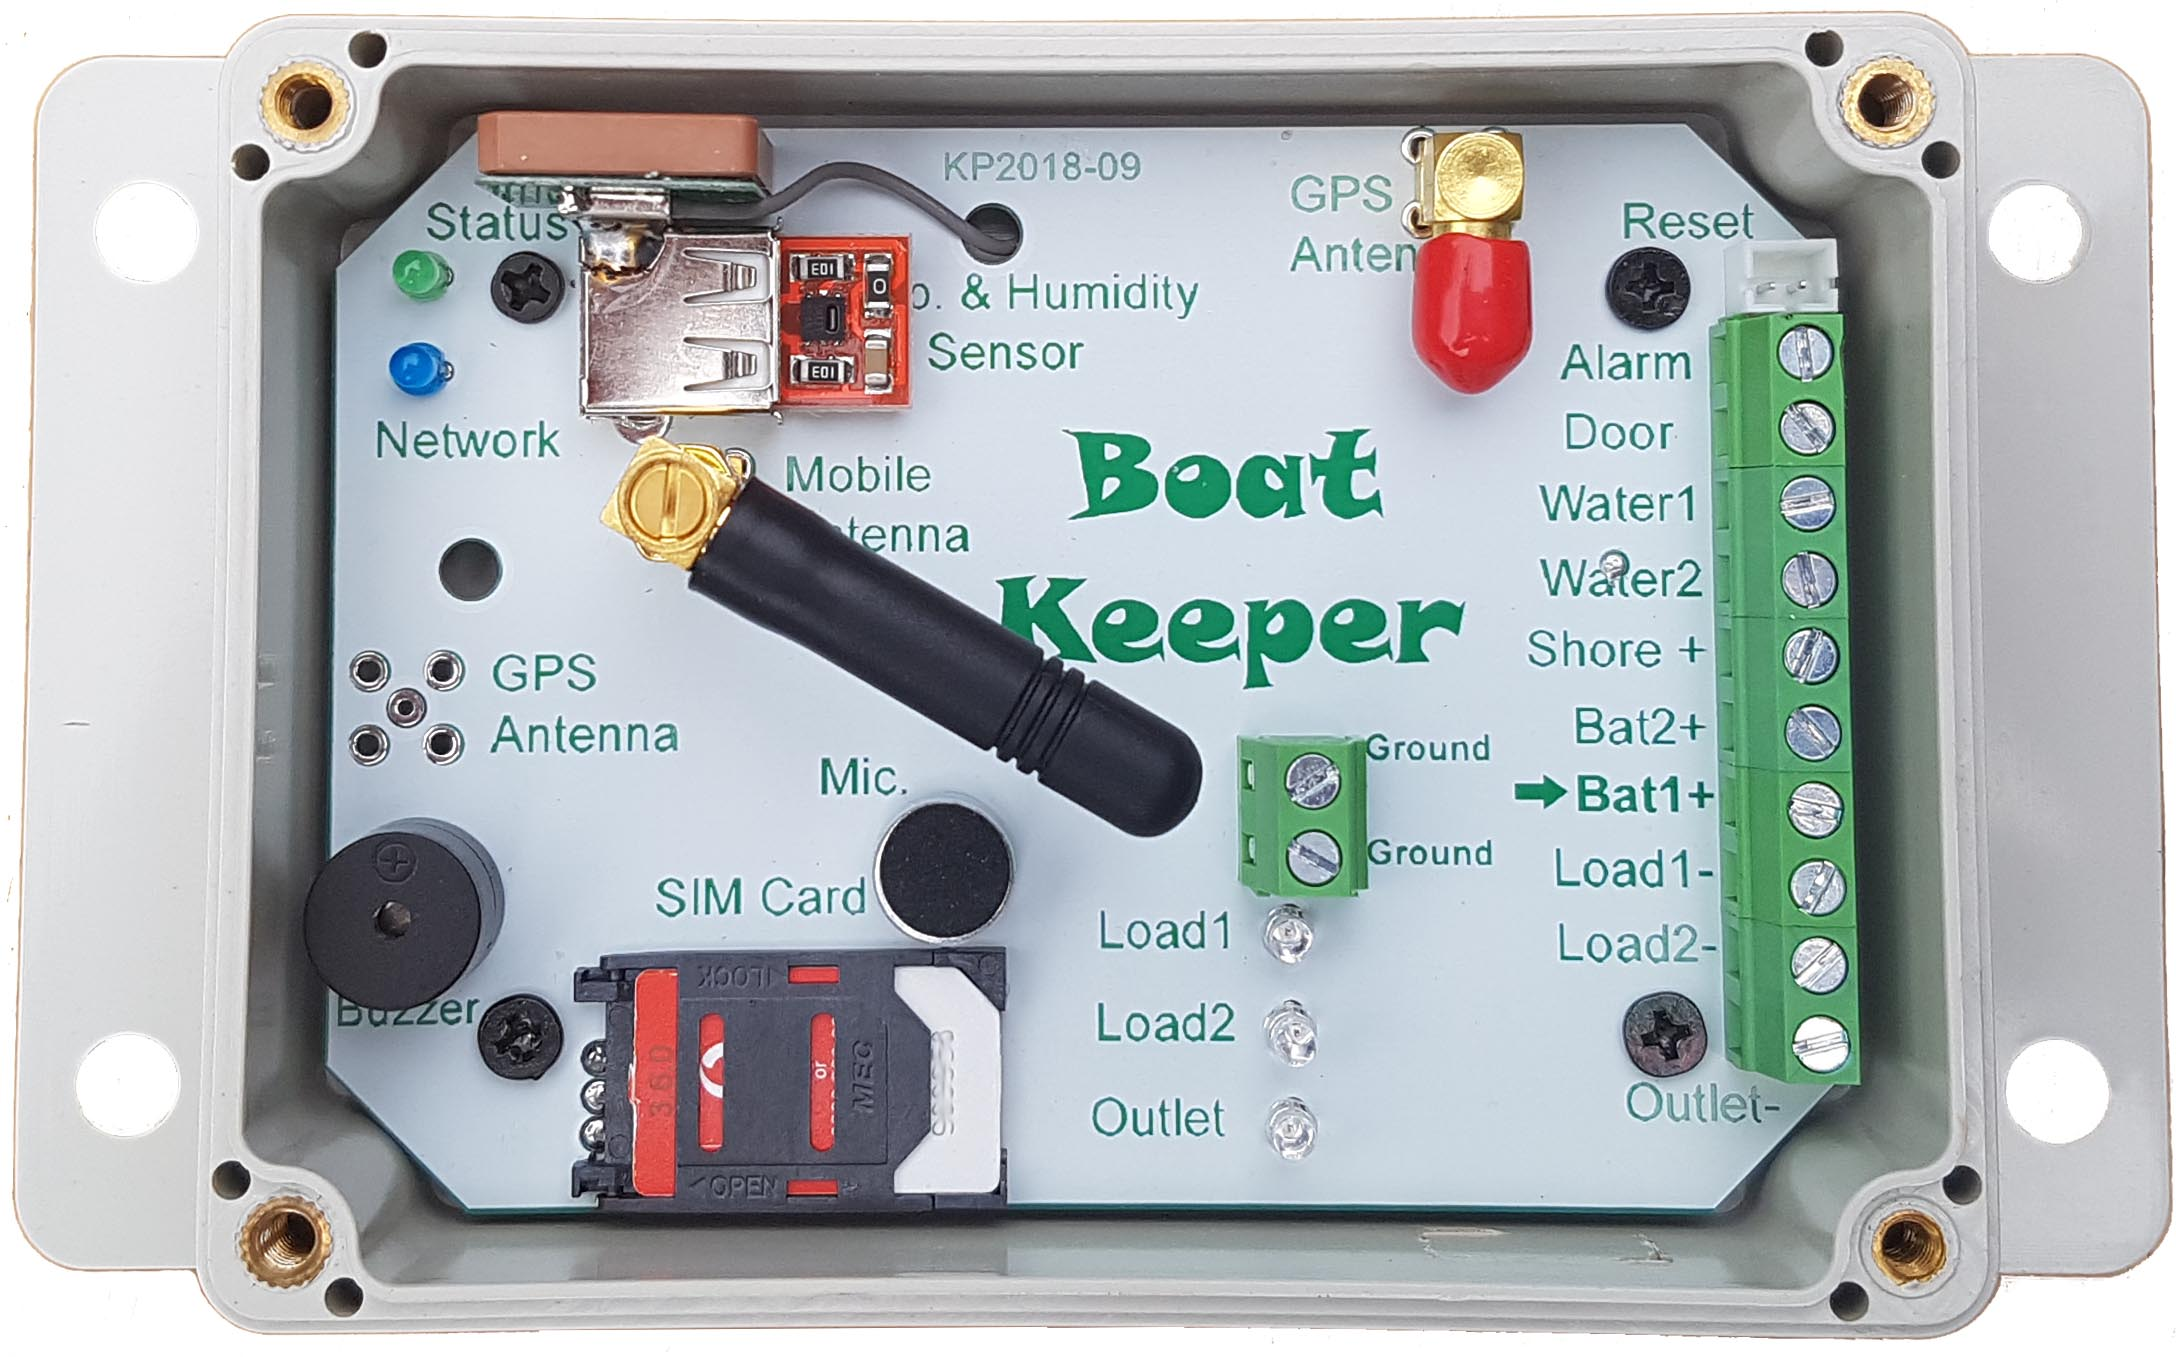 boat keeper gps 3g security controll alarm system